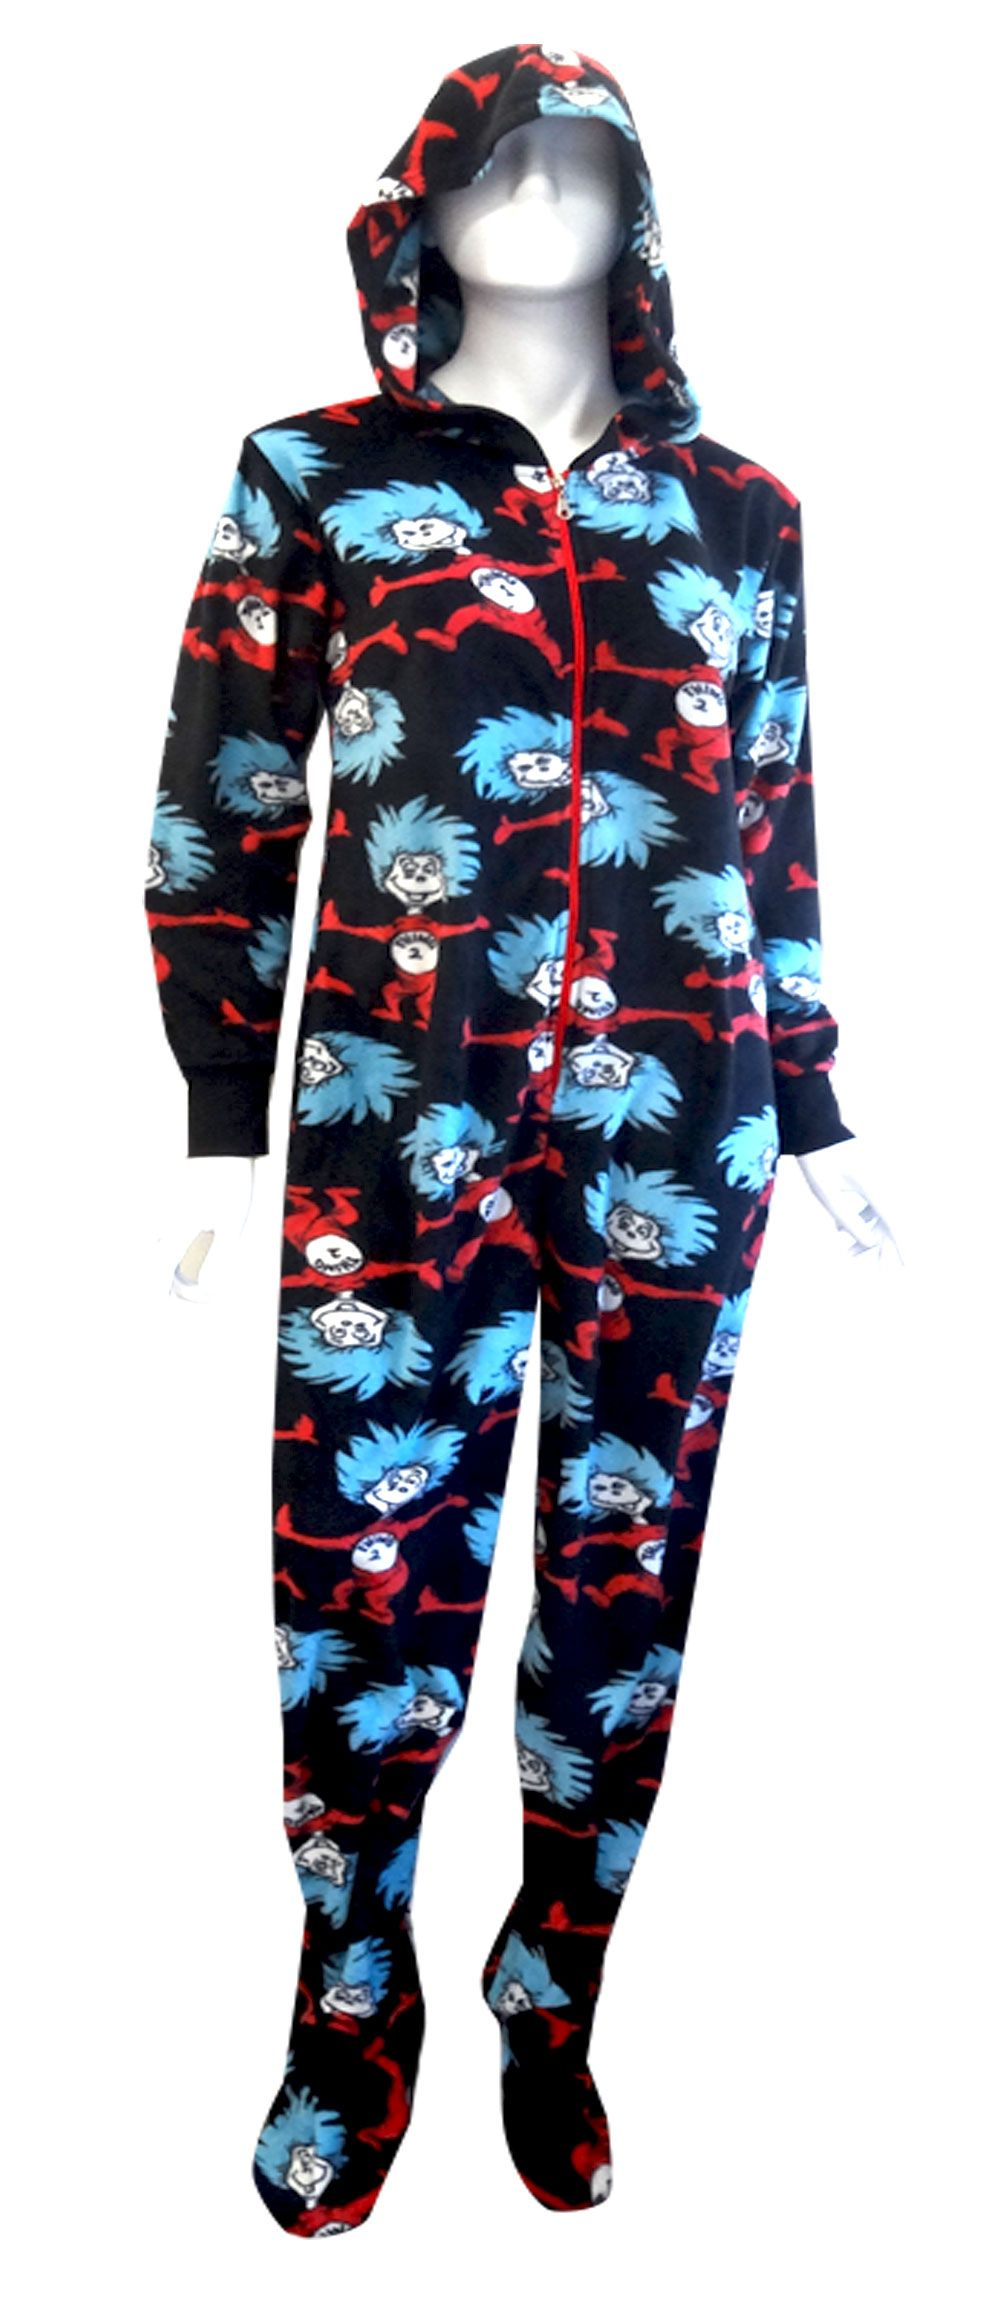 Dr Seuss Thing One   Thing Two Hooded Onesie Footie Pajama The sun did not  shine eed3518579